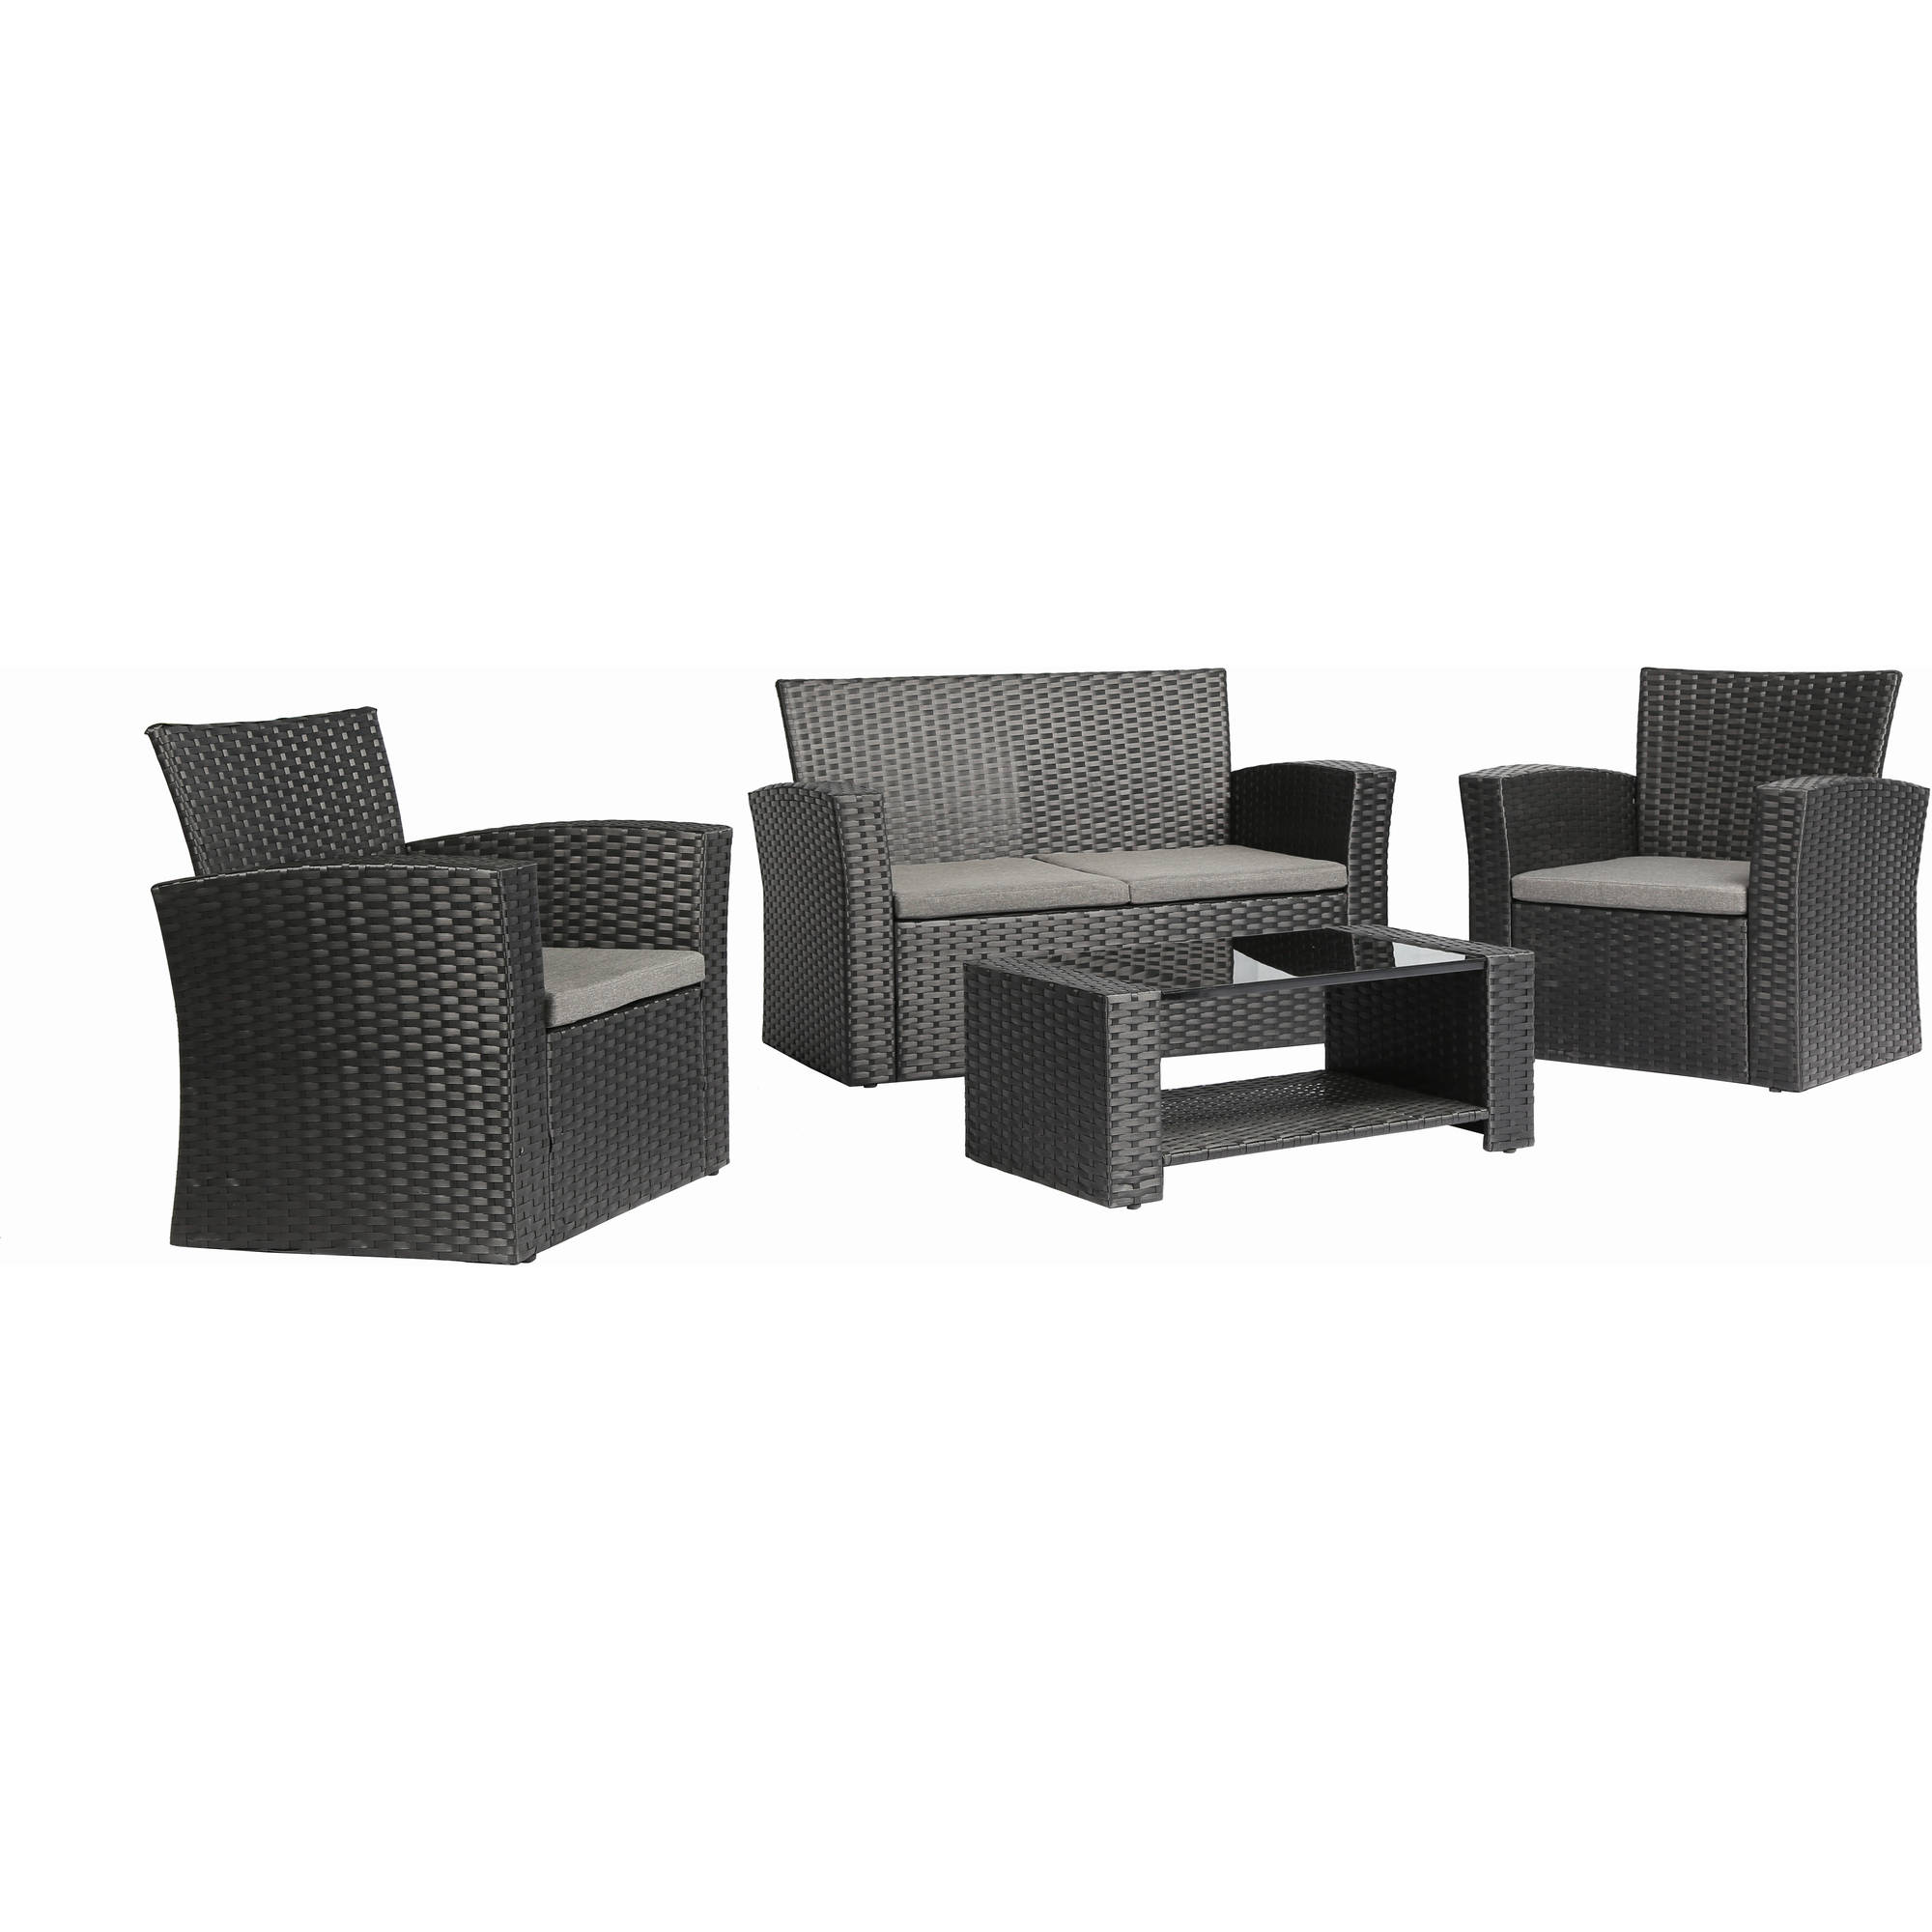 Baner Garden Outdoor Furniture Complete Patio Wicker Rattan Garden Set, Black, 4-Pieces by Caesar Hardware